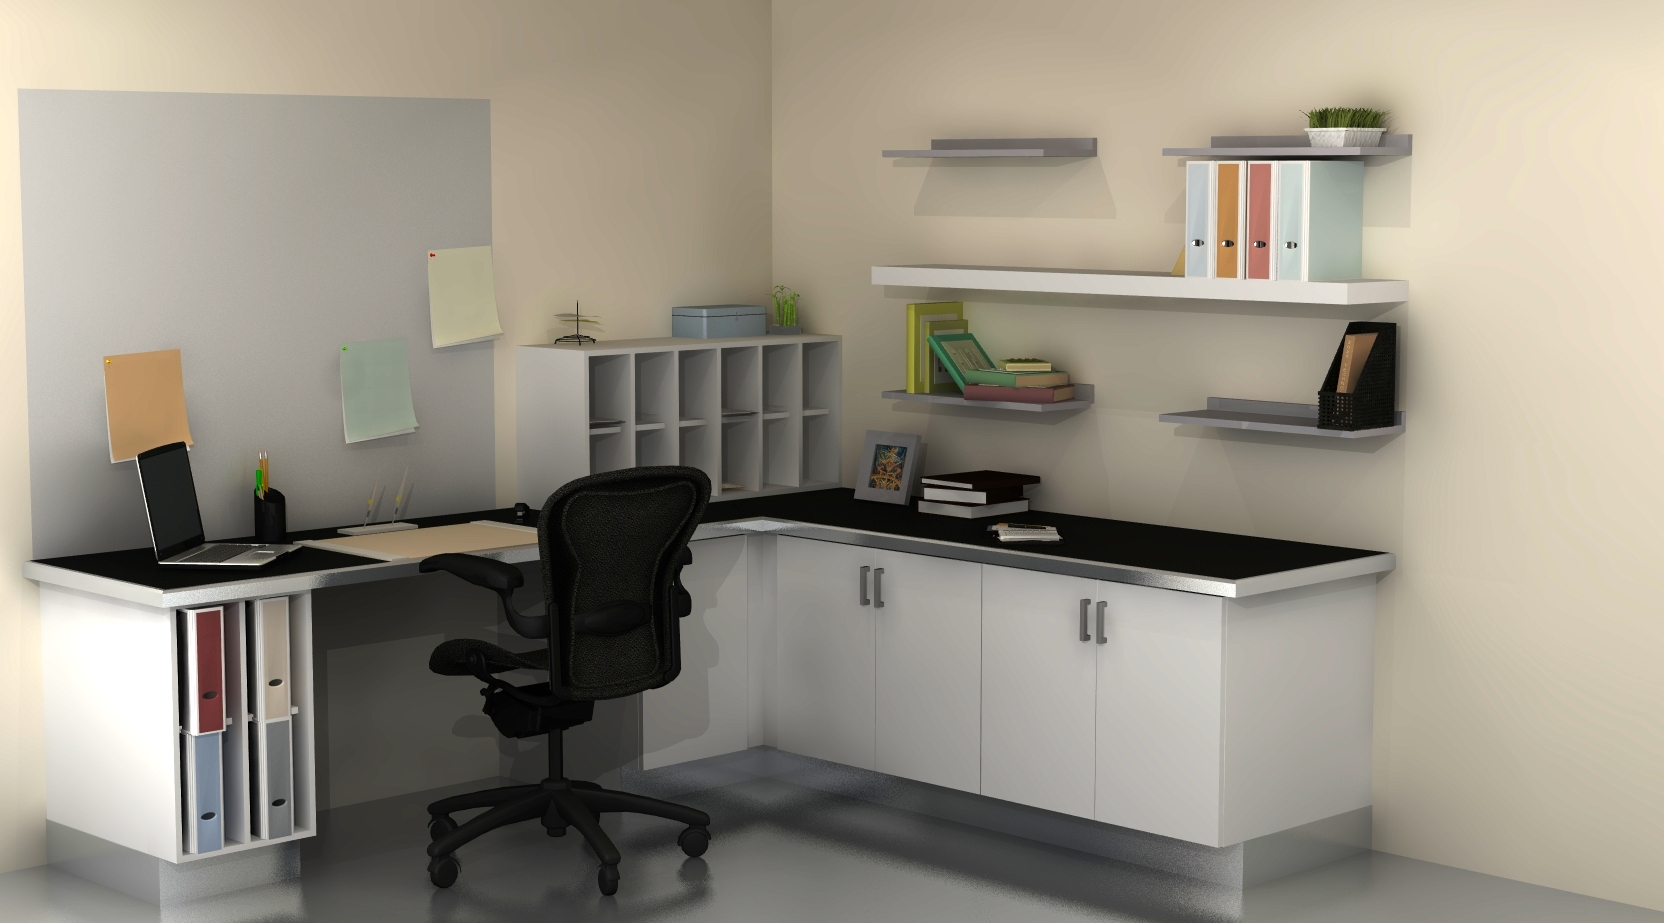 Useful spaces: a home office with IKEA cabinets